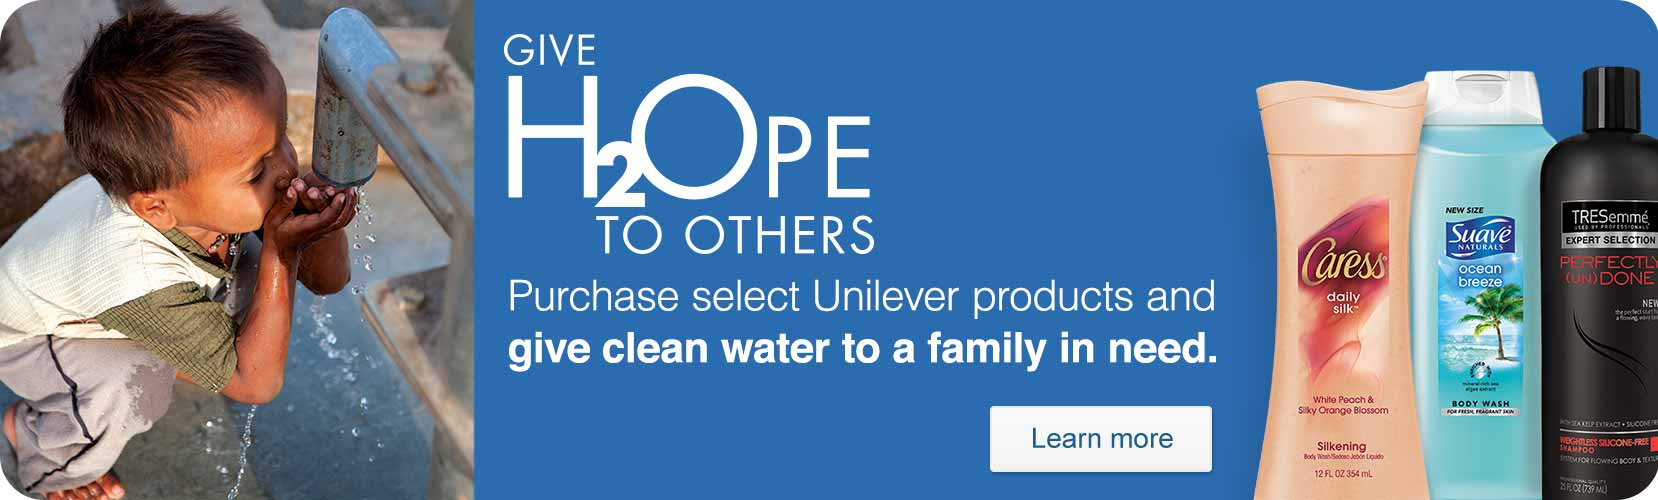 Purchase select Unilever products and give clean water to a family in need. Learn more.